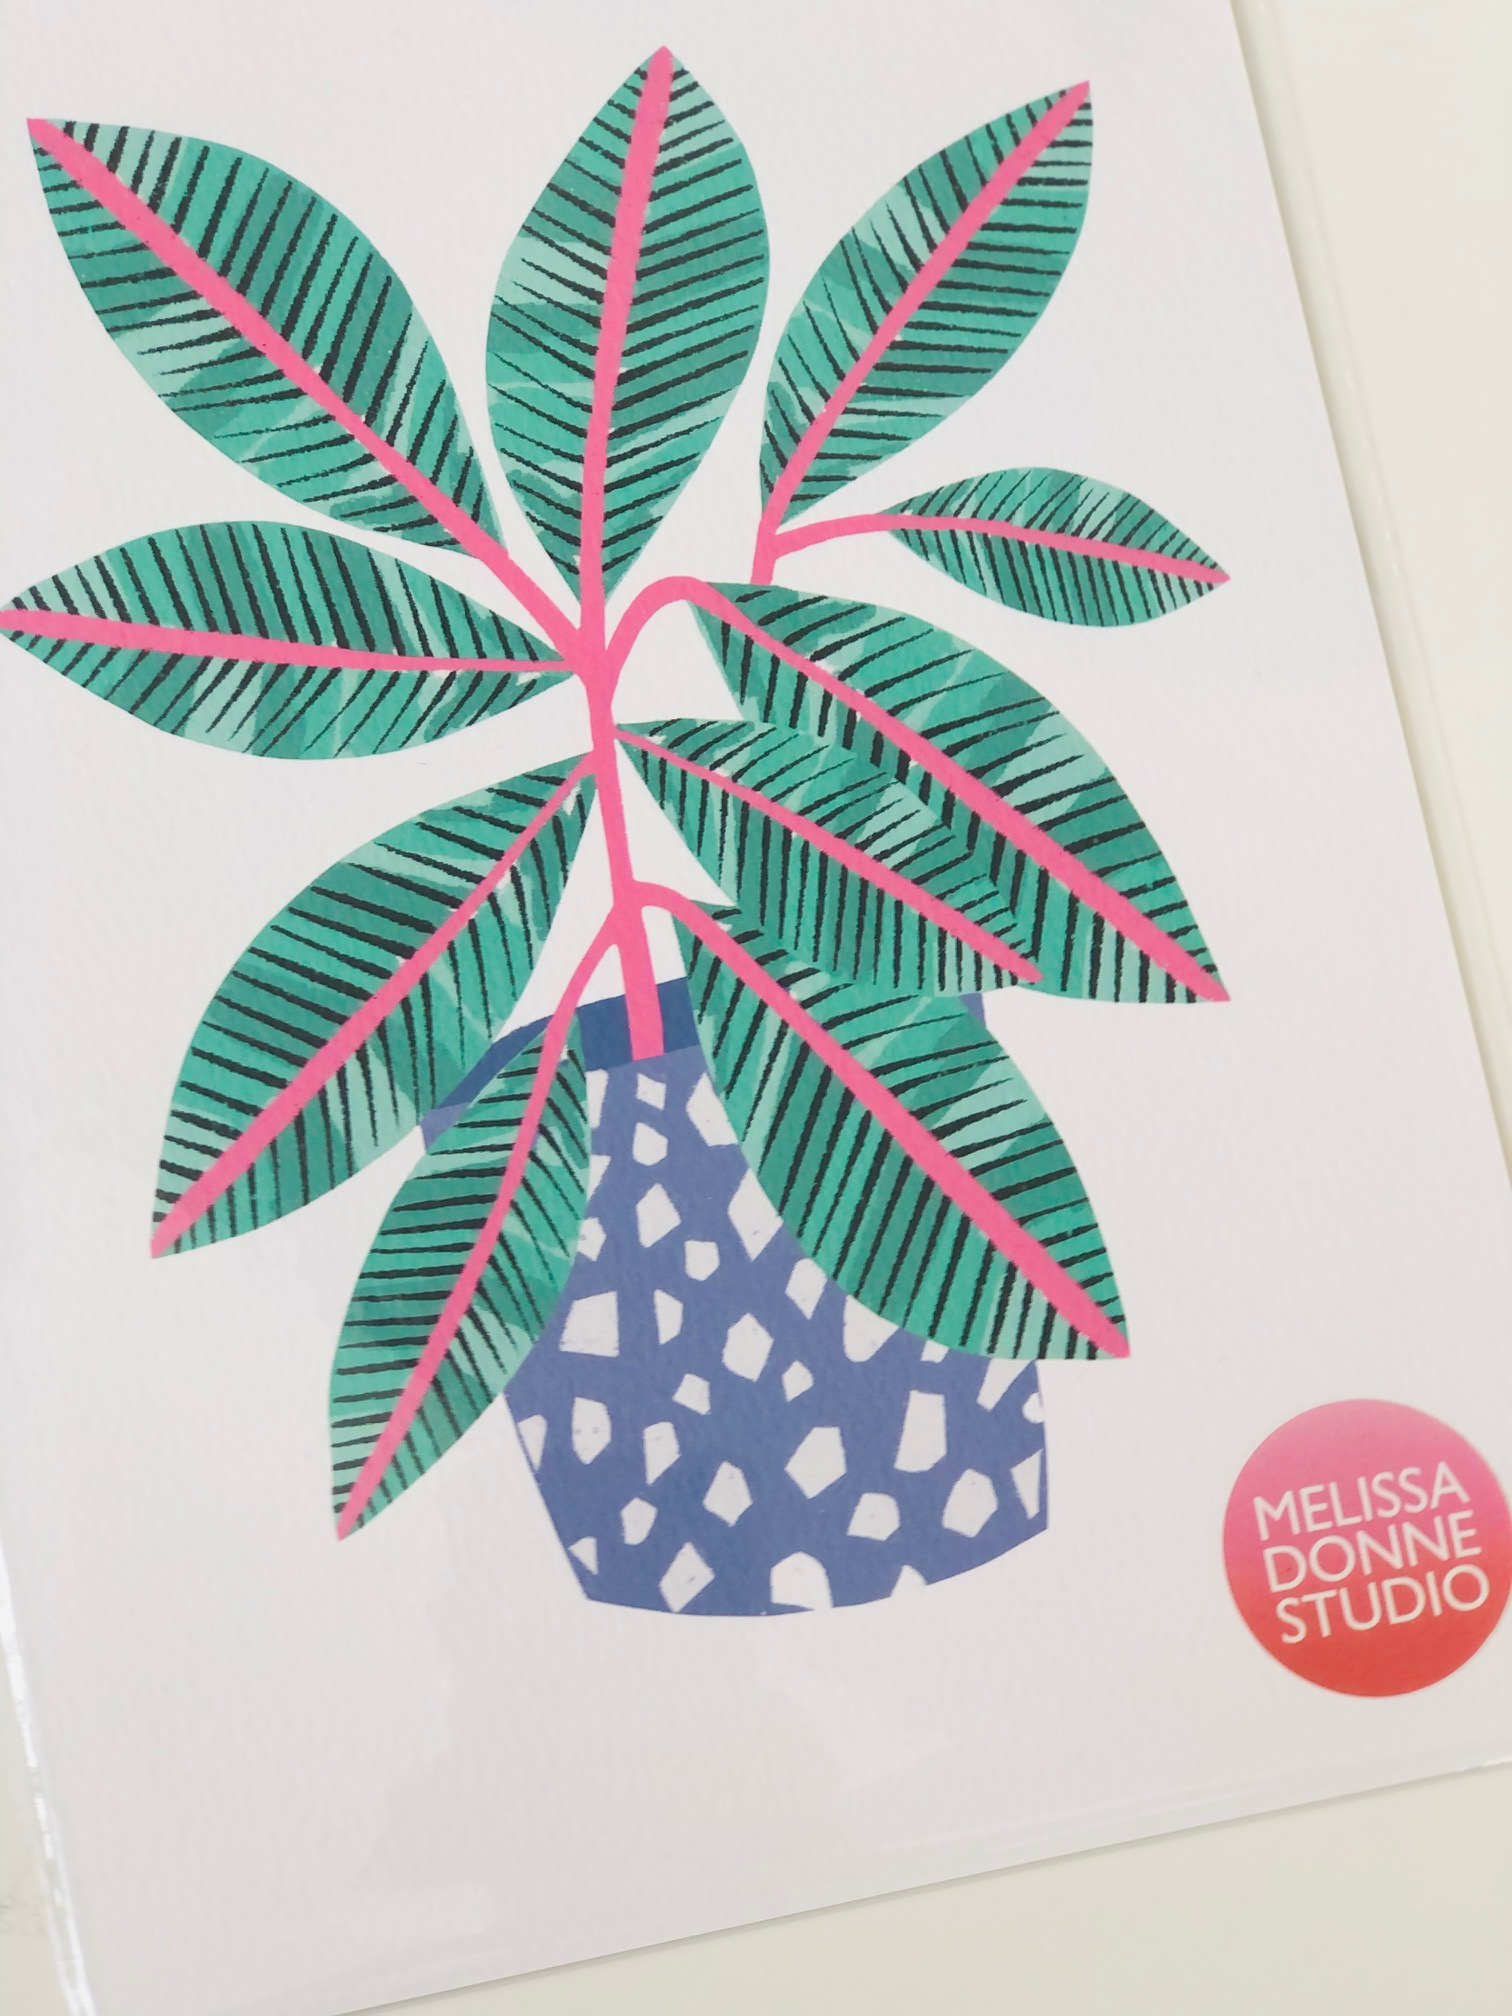 'Plant in Terrazzo Pot' A4 Digital Print by Melissa Donne